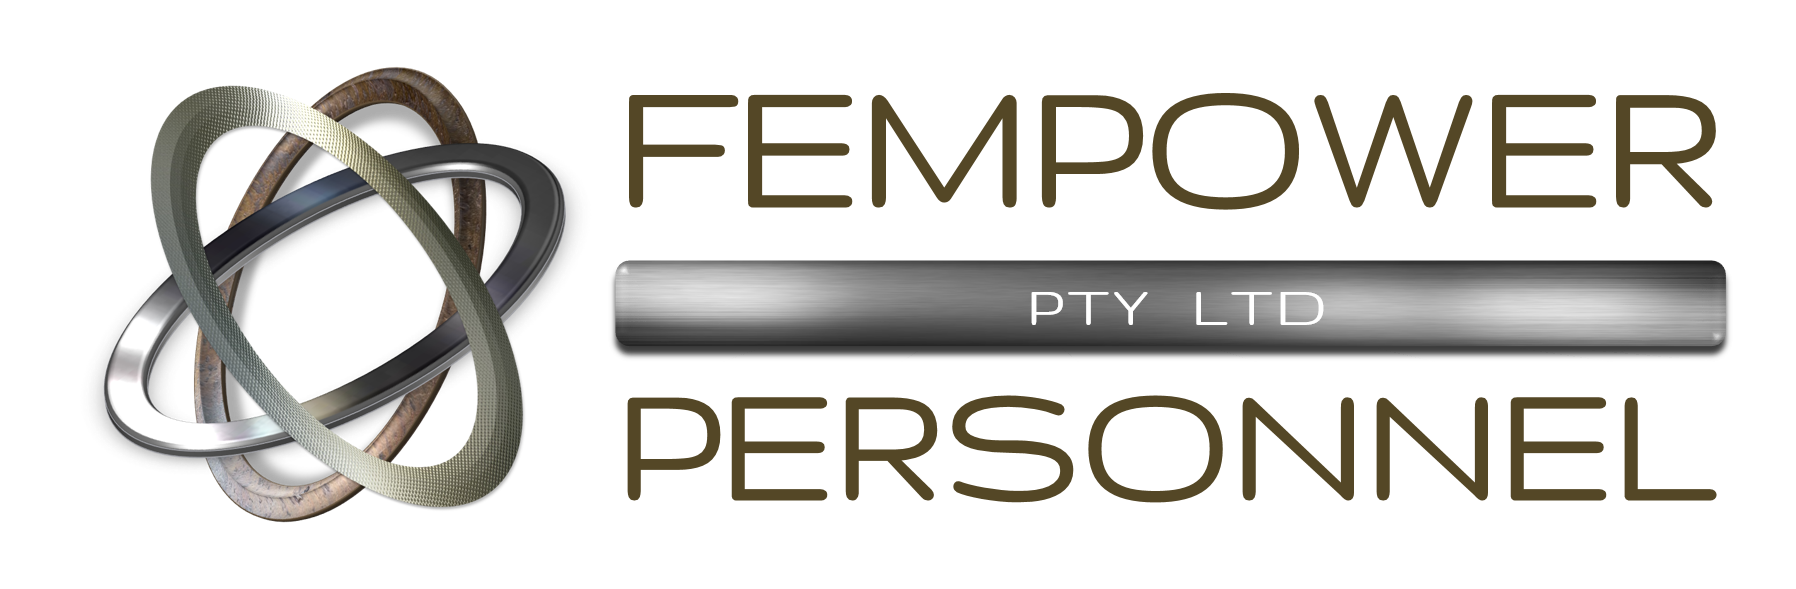 Find Jobs In South Africa | South Africa | Fempower Personnel Pty Ltd